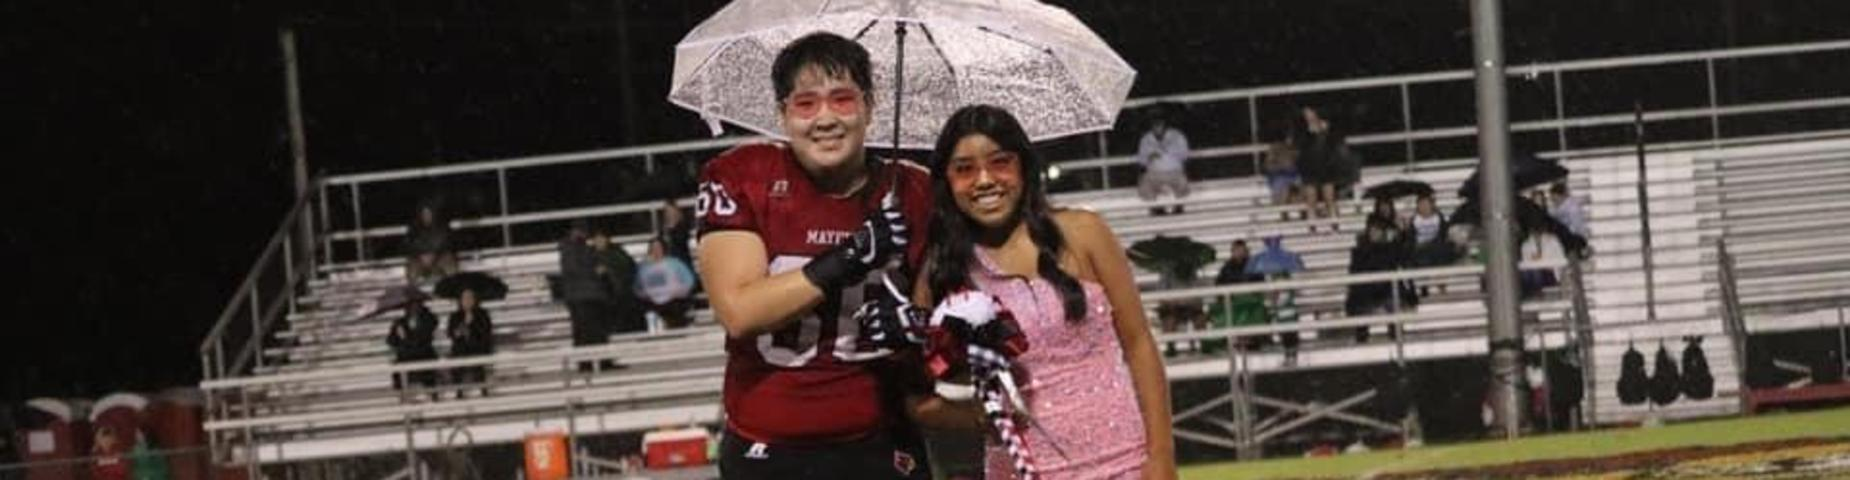 MHS 2021-2022 Homecoming Queen Jelsy Fabian and her escort Knox Story.